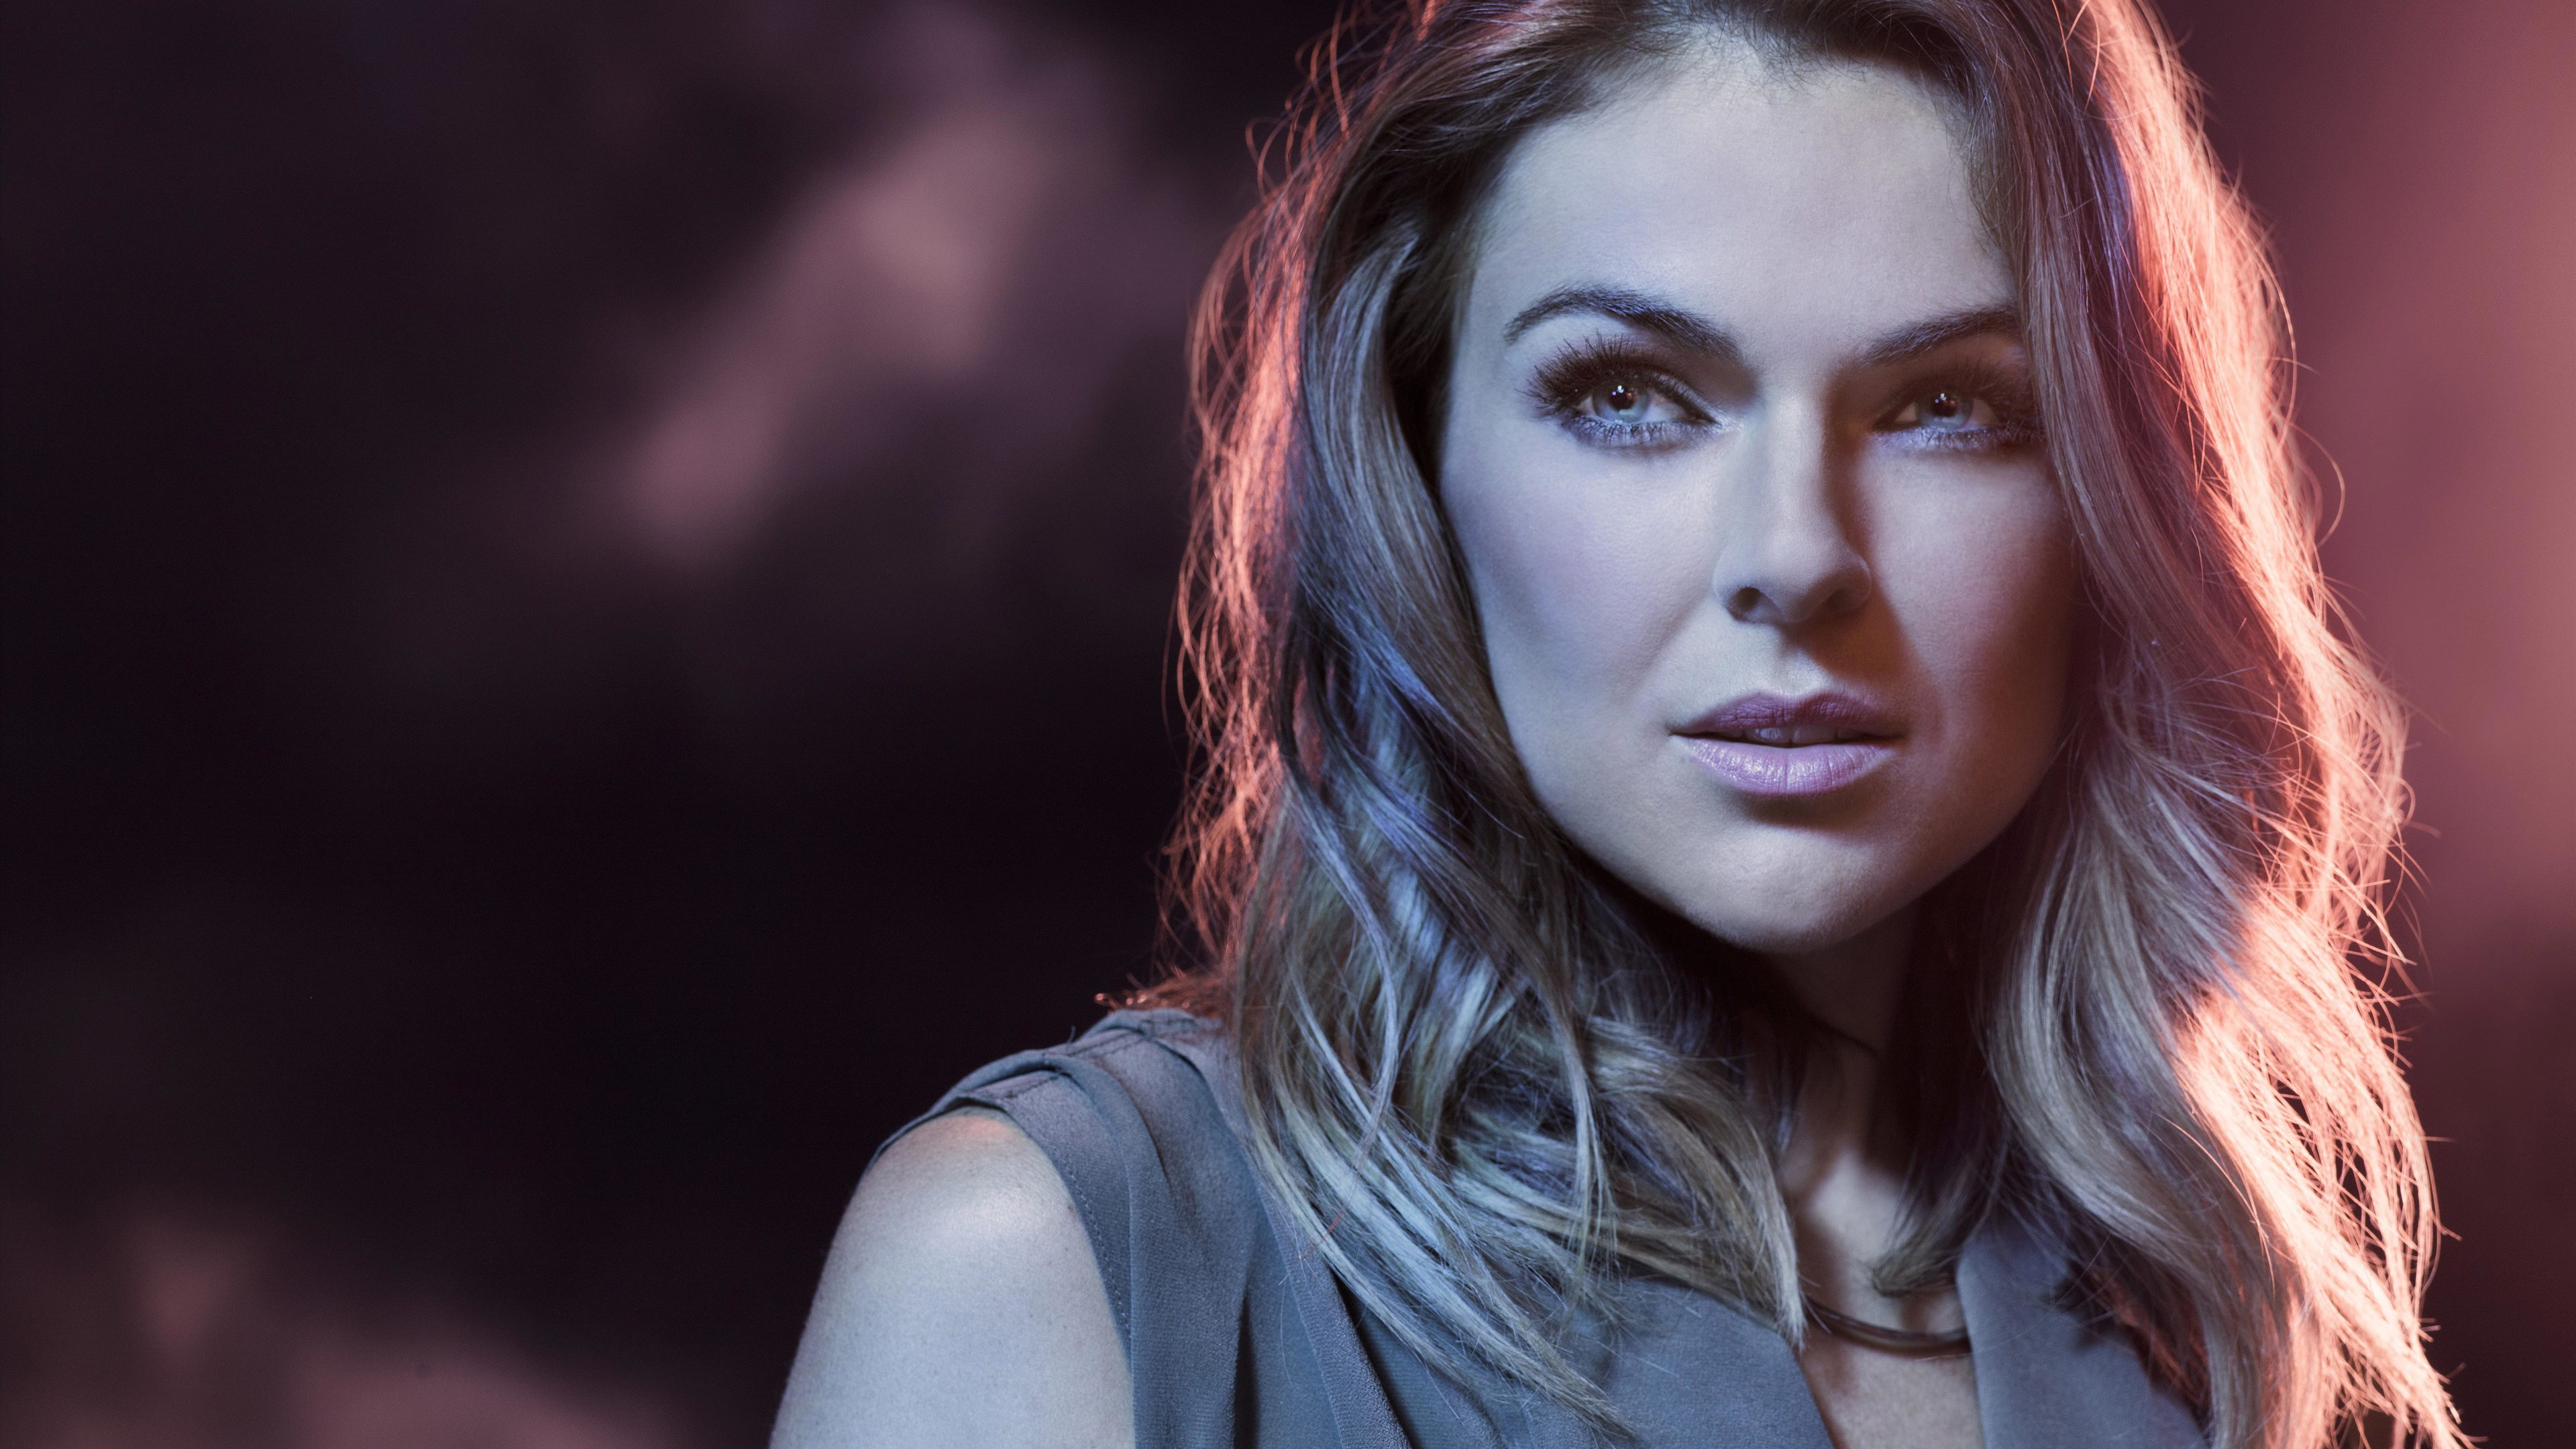 serinda swan 8k 1536861639 - Serinda Swan 8k - serinda swan wallpapers, hd-wallpapers, girls wallpapers, celebrities wallpapers, 8k wallpapers, 5k wallpapers, 4k-wallpapers